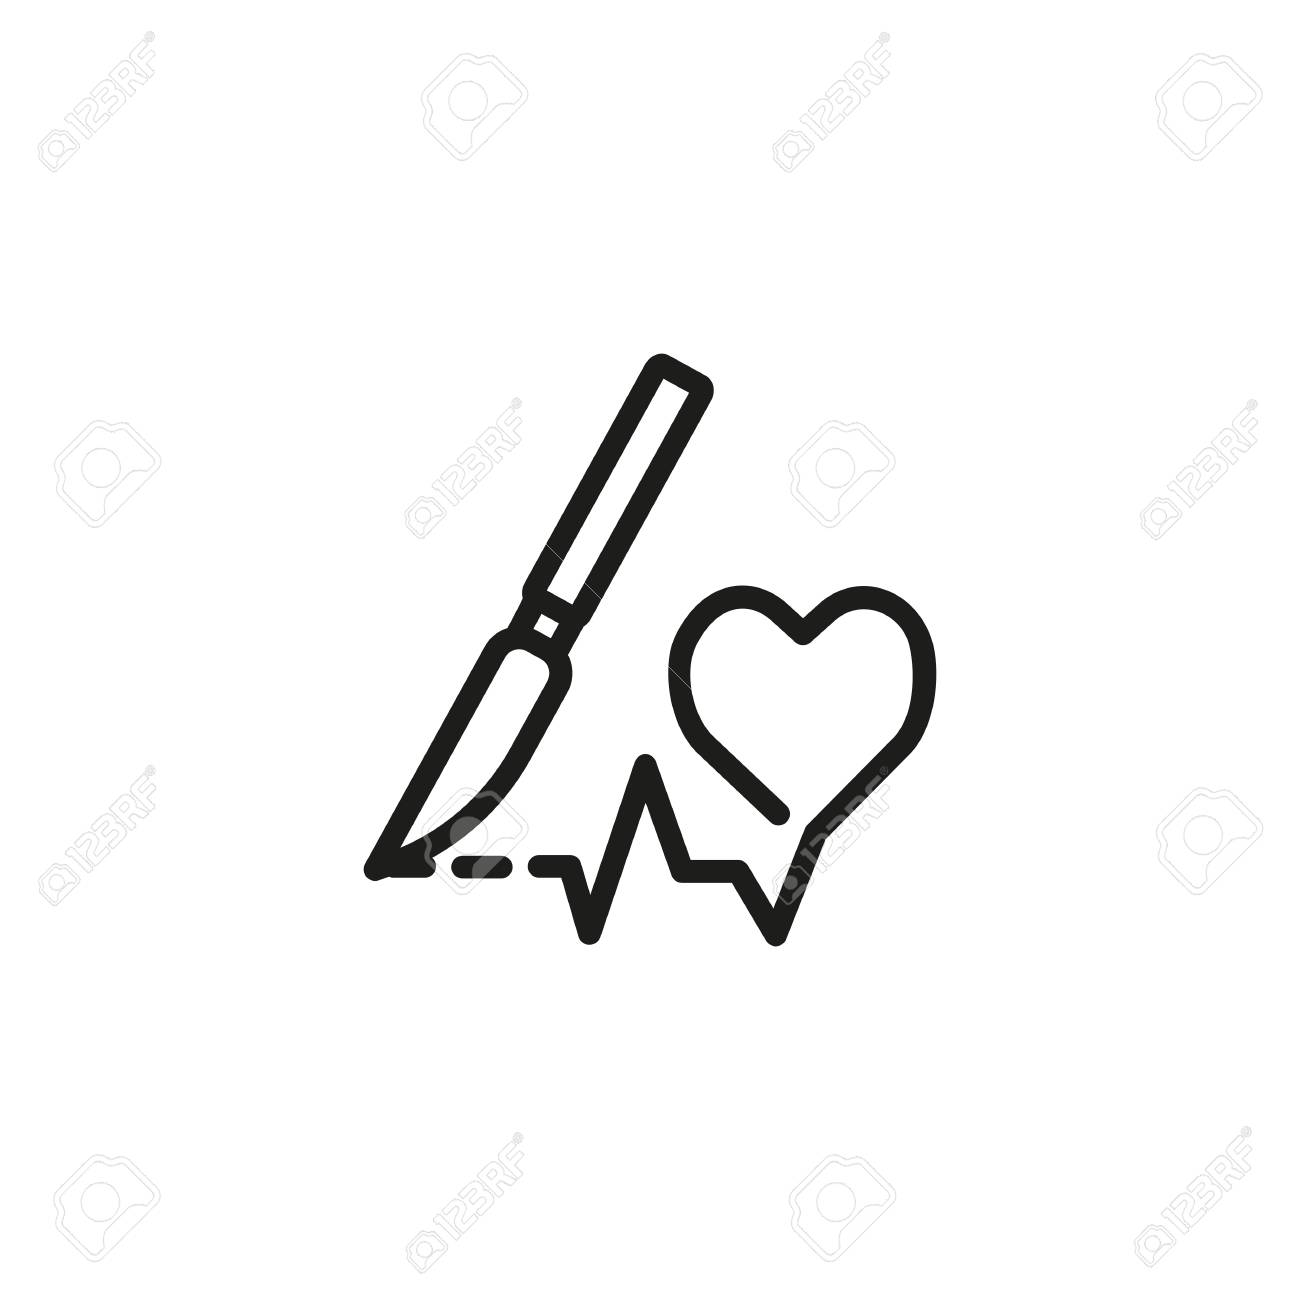 Heart Surgery Line Icon Heart Shape Cardiograph Scalpel Health Royalty Free Cliparts Vectors And Stock Illustration Image 108224928